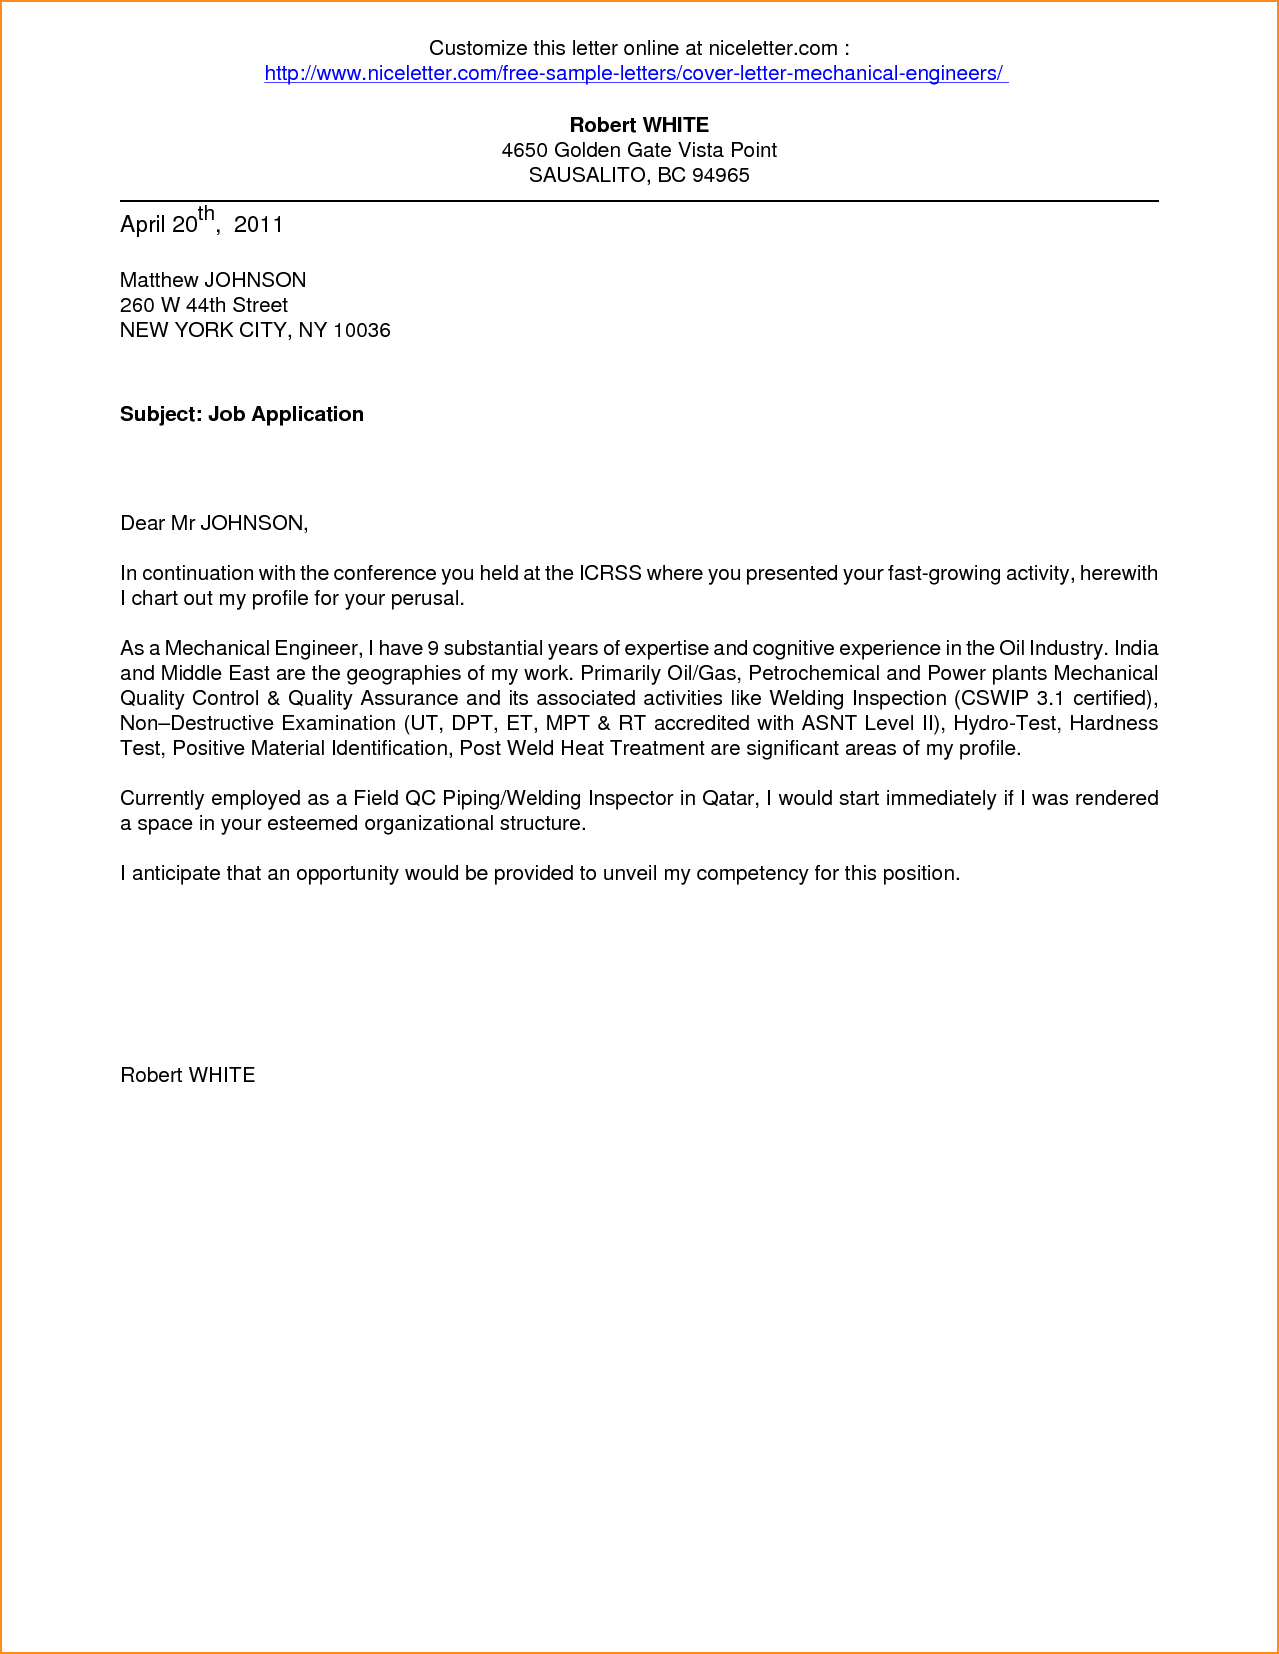 Application For Employment Cover Letter